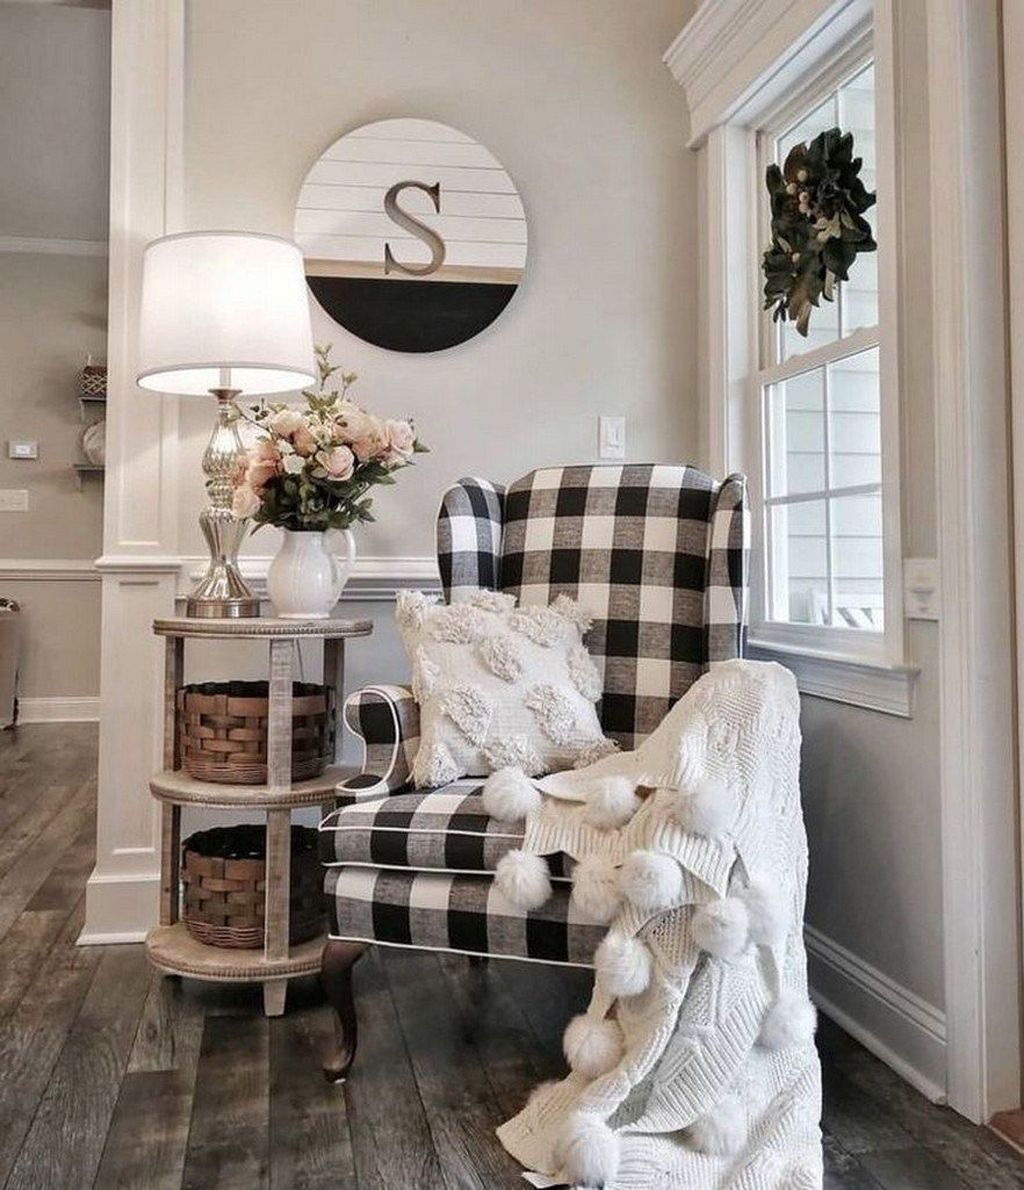 The Best Ideas To Decorate Interior Design With Farmhouse Style 32